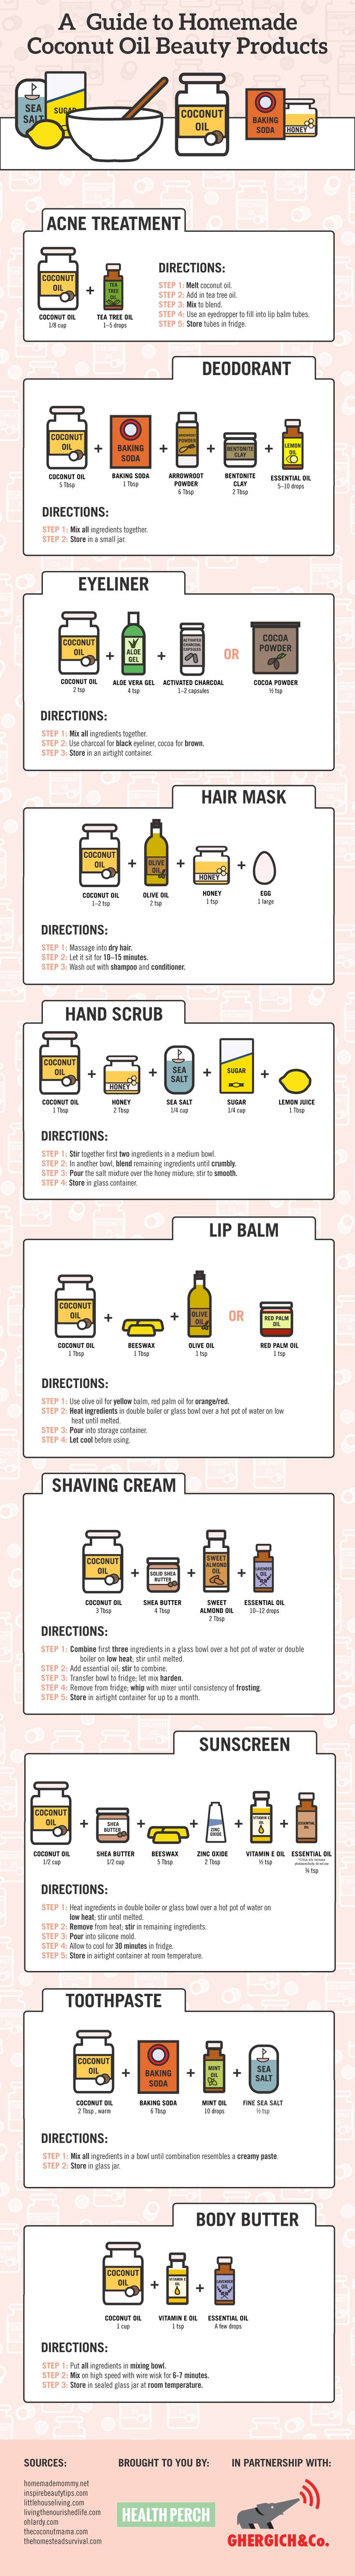 A Guide to Homemade Coconut Oil Beauty Products: Create Your Own Coconut Oil Beauty Products  [by Health Perch -- via #tipsographic]. More at tipsographic.com